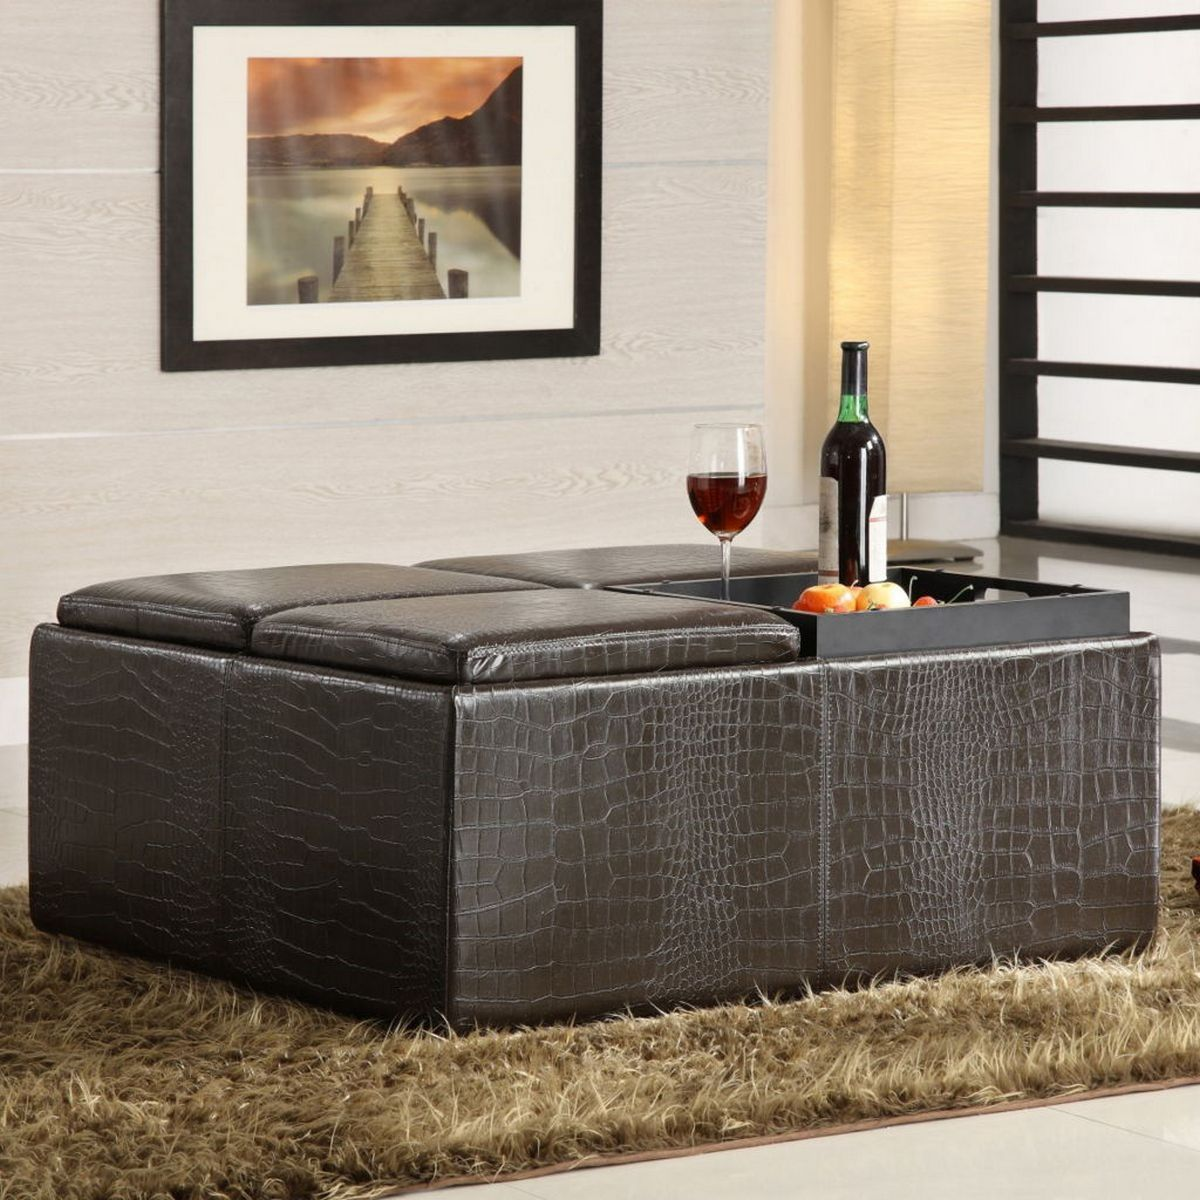 Astonishing Large Black Ottoman In Square Shape For Contemporary Style Caraccident5 Cool Chair Designs And Ideas Caraccident5Info